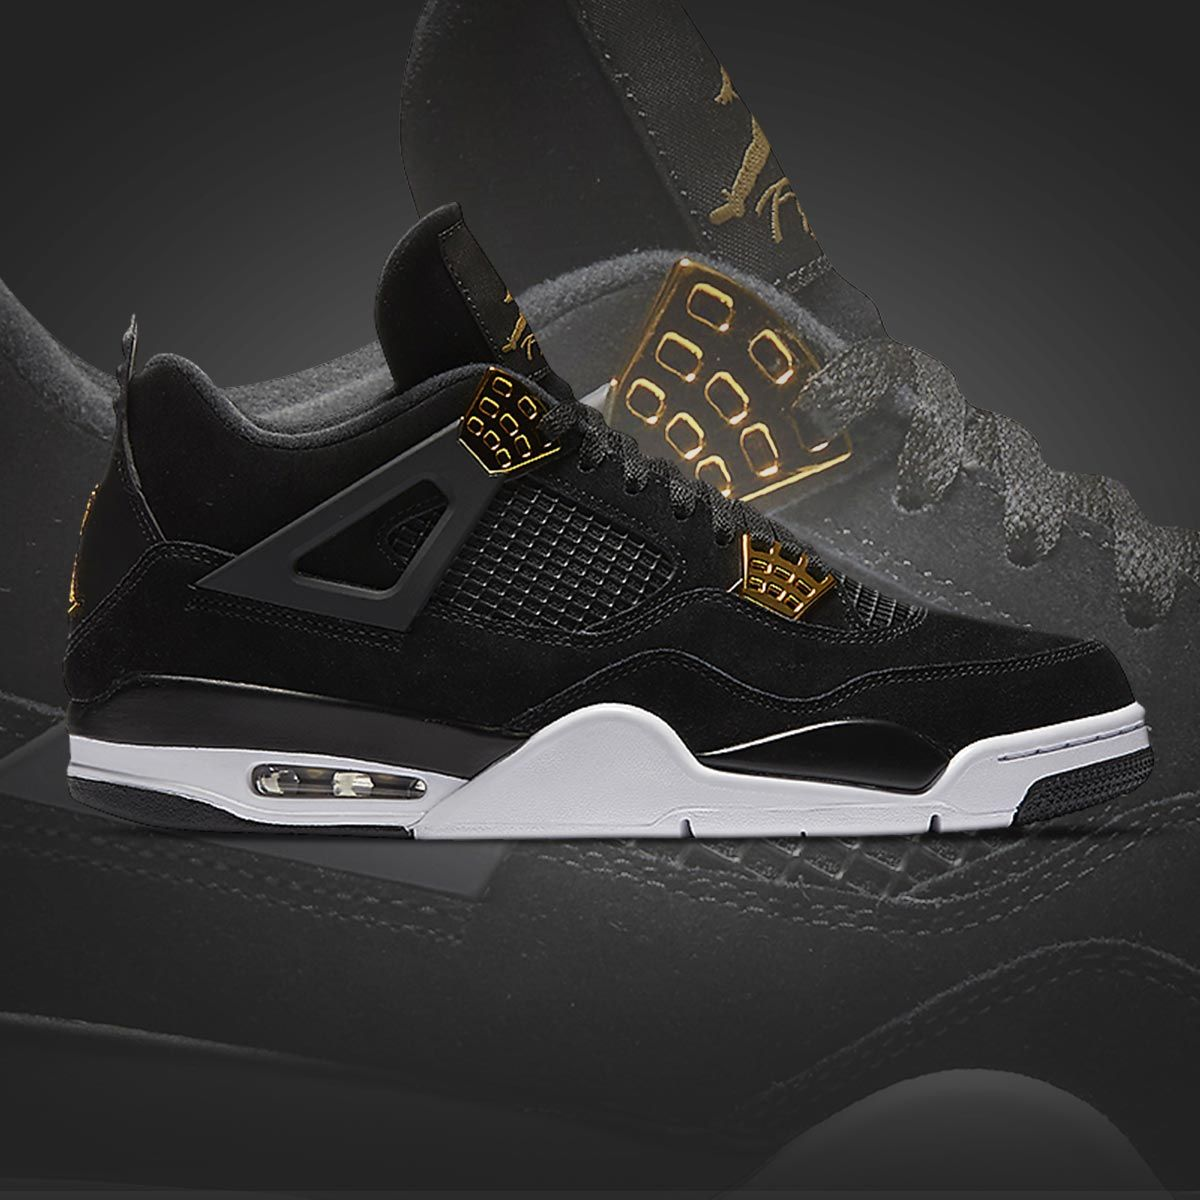 huge discount 1d76f 11975 Metallic gold finishes fit for a king. The Jordan Retro 4  Royalty  is out  now.